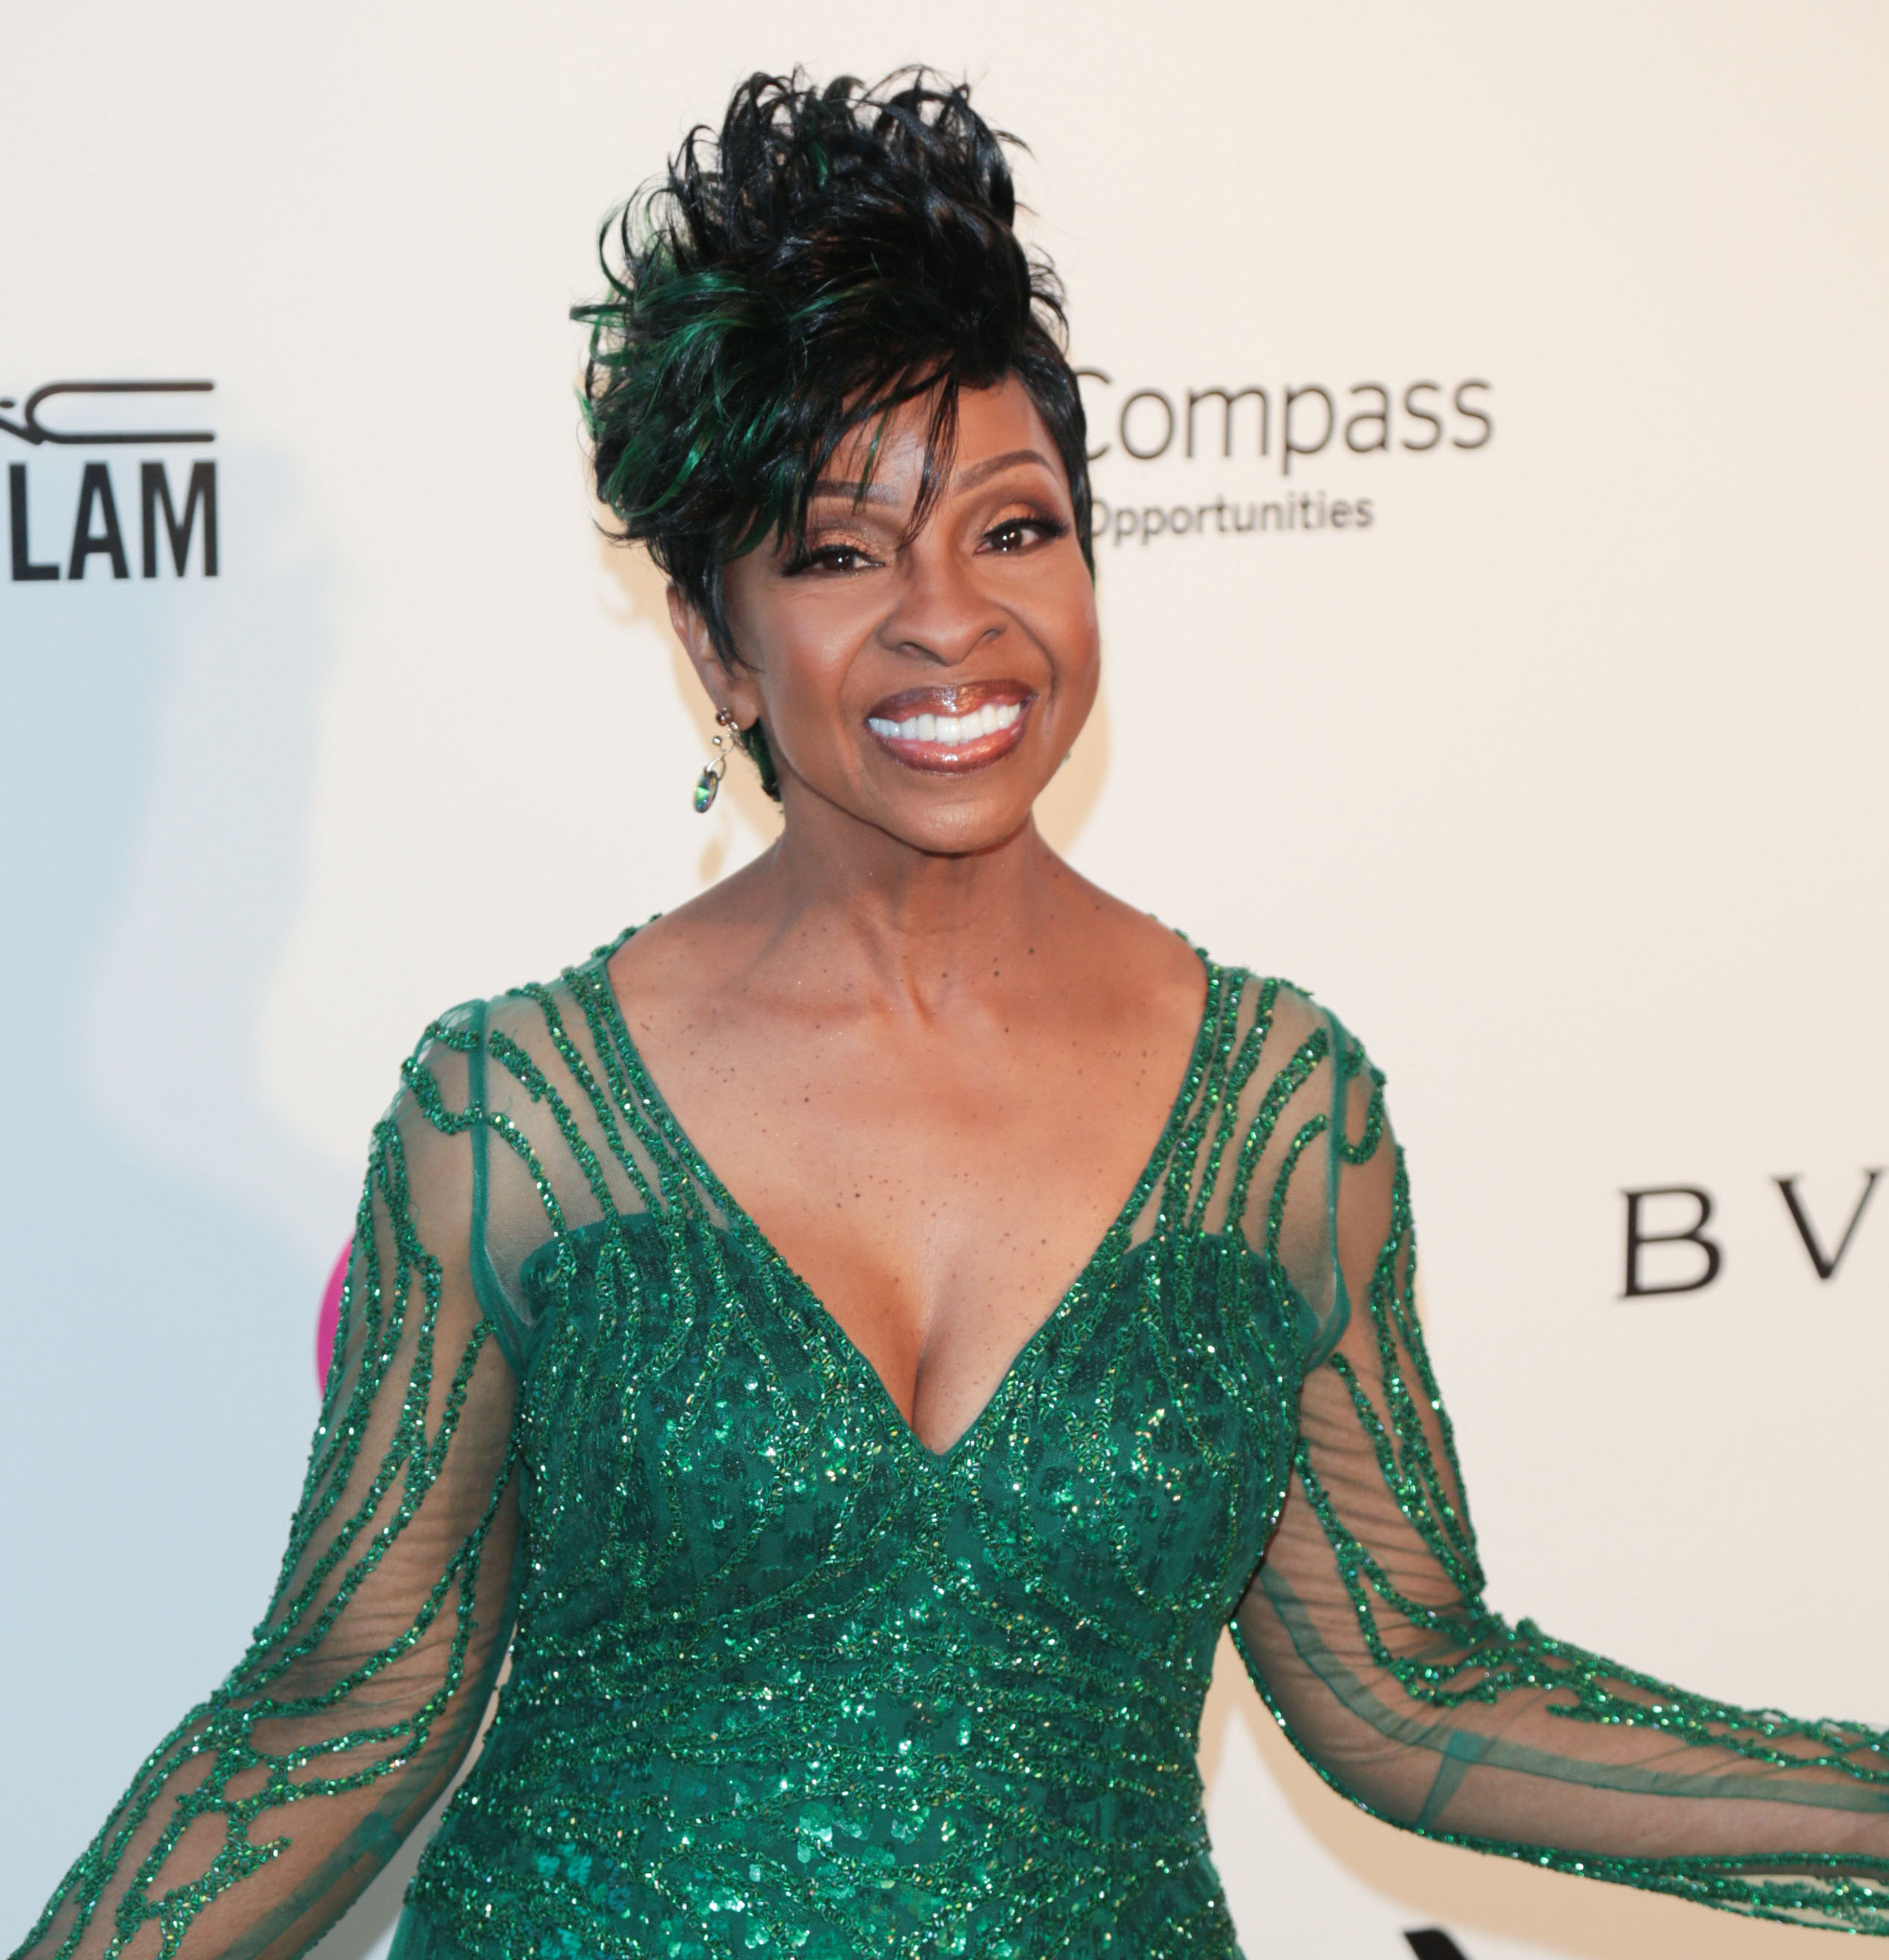 Gladys Knight Issues Statement On Performing At The Super Bowl